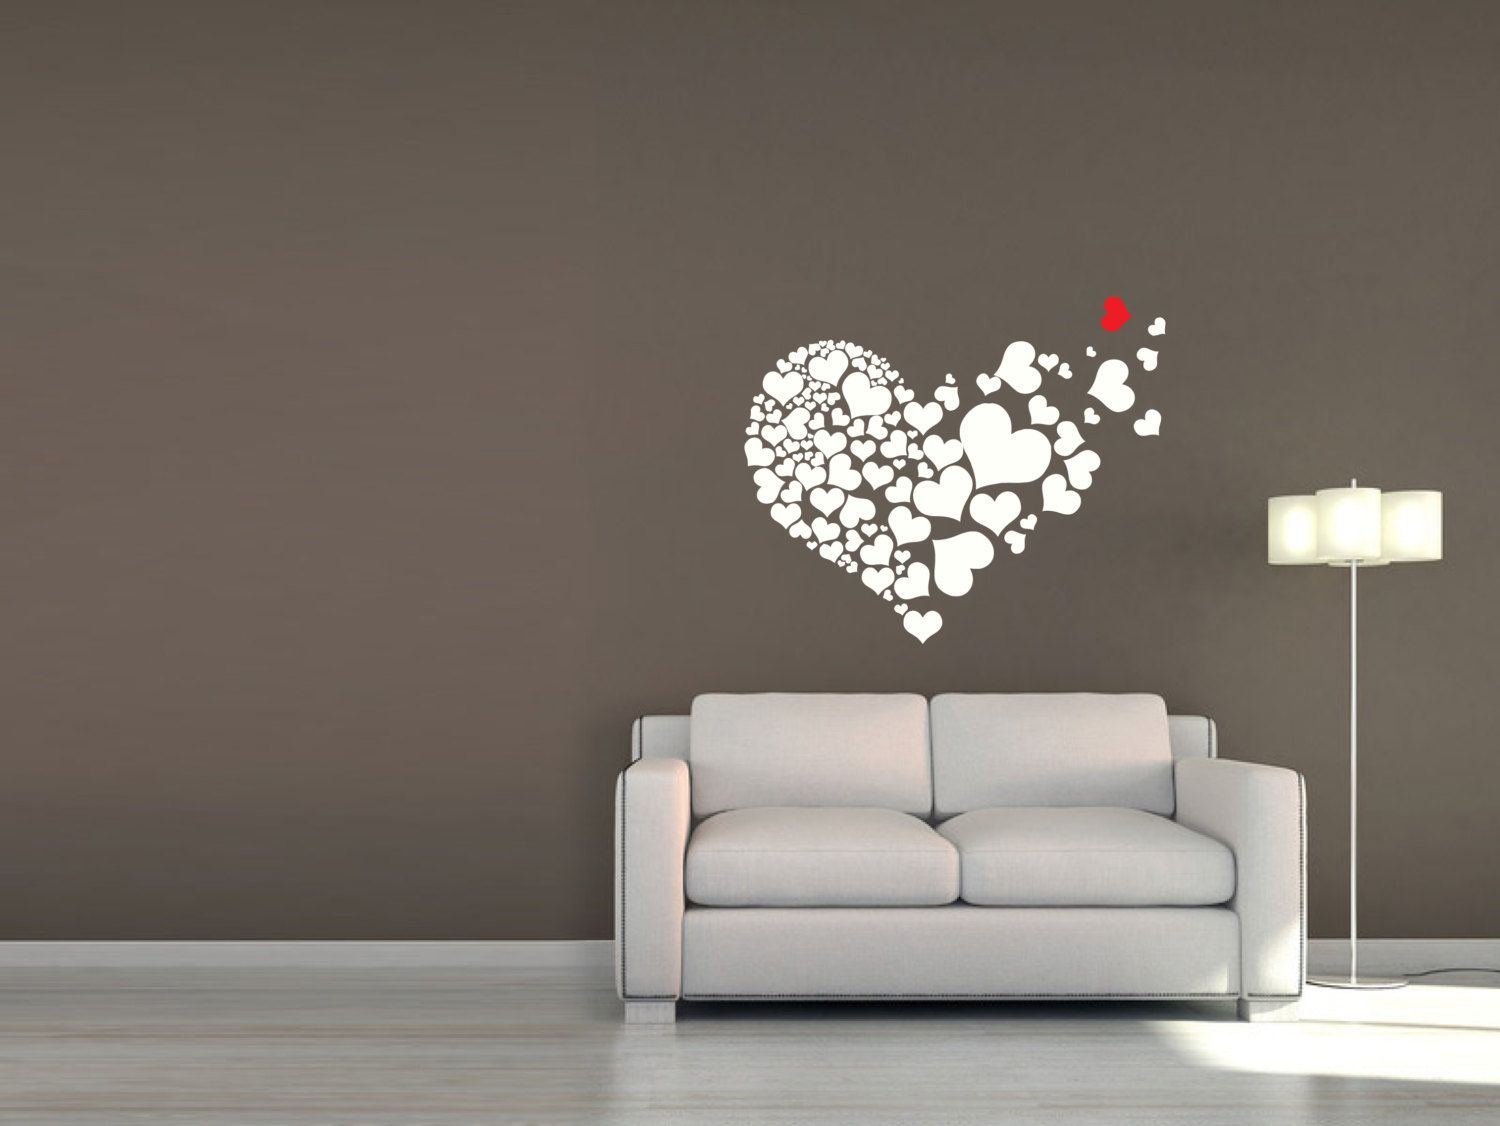 Wall Sticker Love Hearts Removable Heart Design in Black Grey